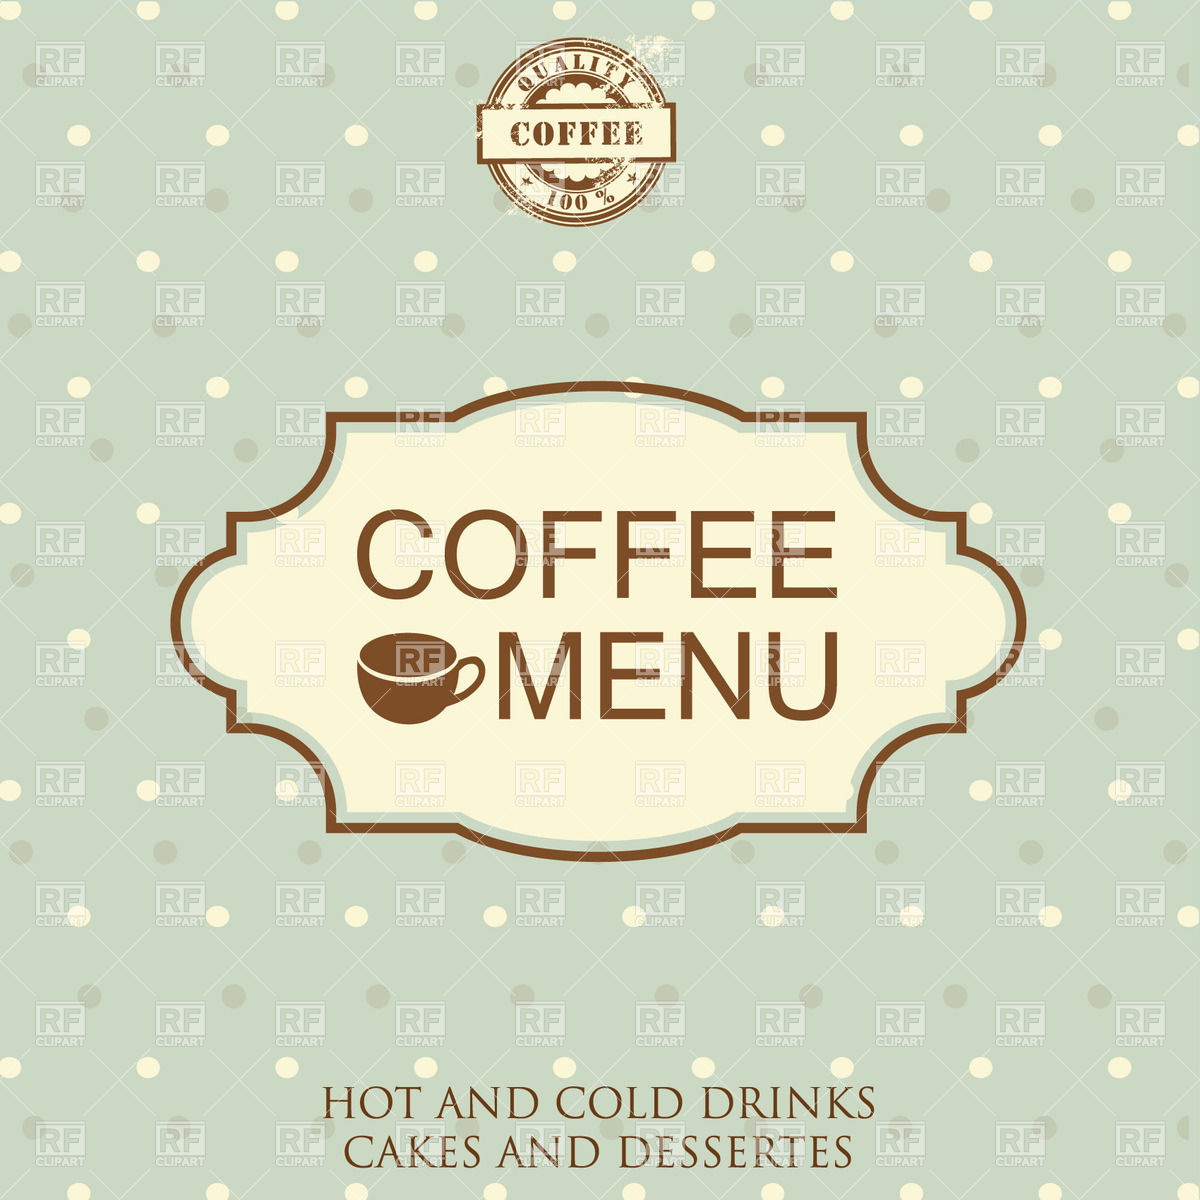 Restaurant or cafe menu design with frame in retro style Stock Vector Image.